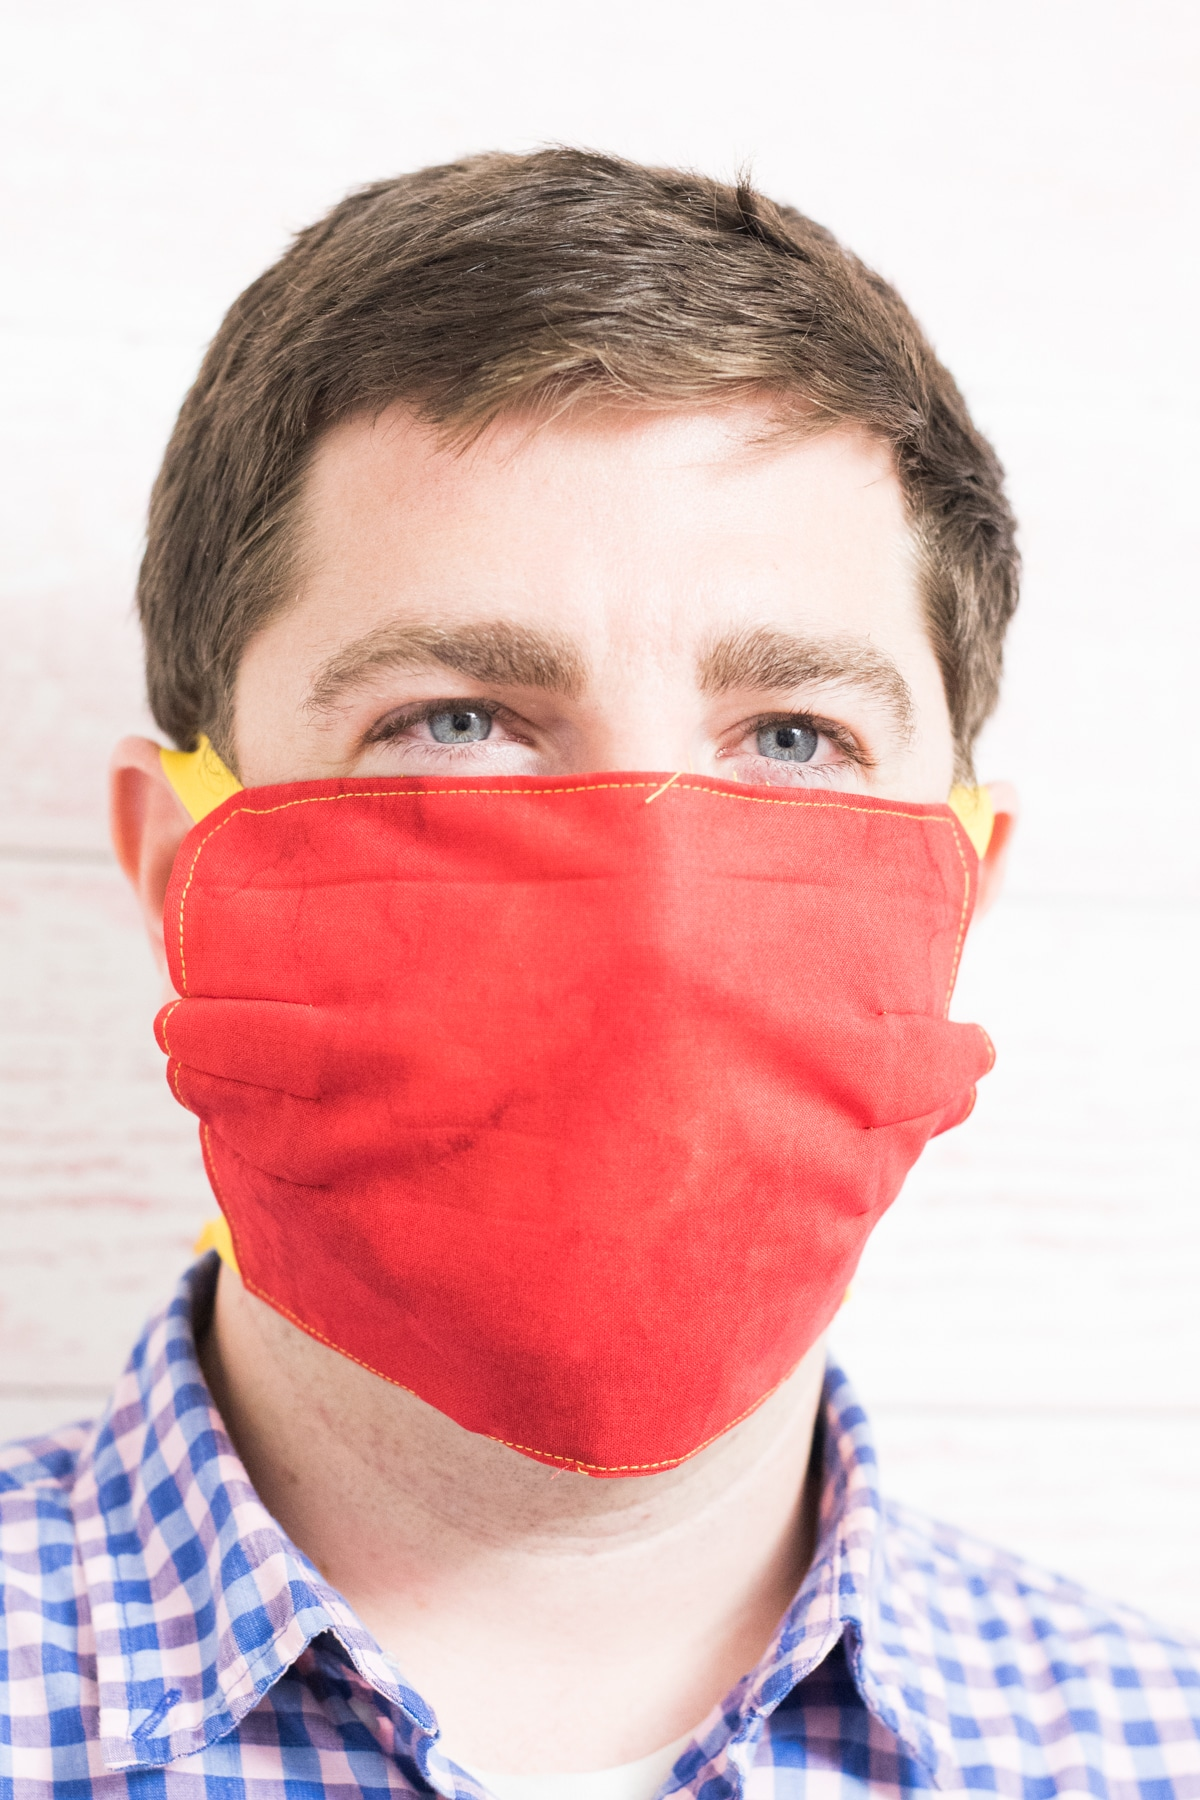 A close up of a man wearing a red mask and blue shirt